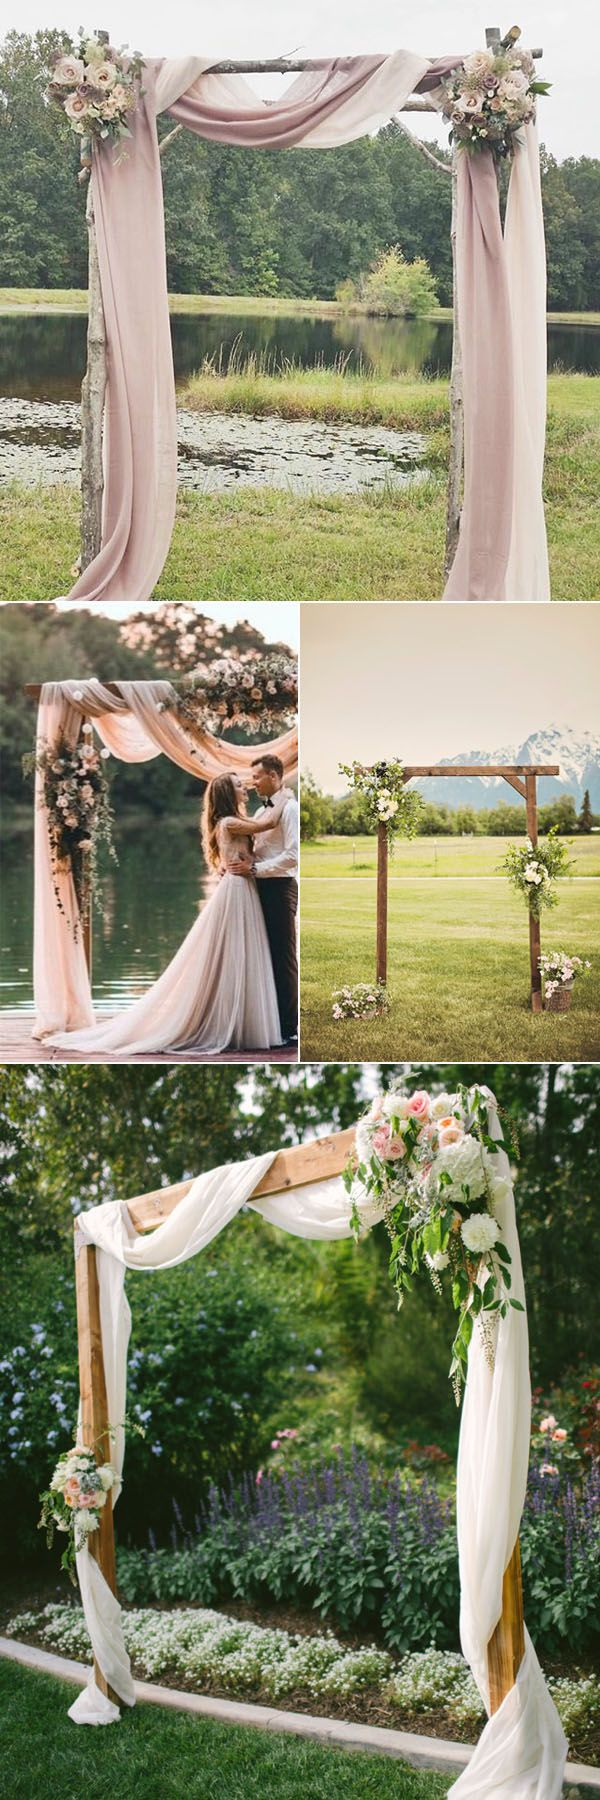 32 rustic wedding decoration ideas to inspire your big day rustic 32 rustic wedding decoration ideas to inspire your big day oh best day ever junglespirit